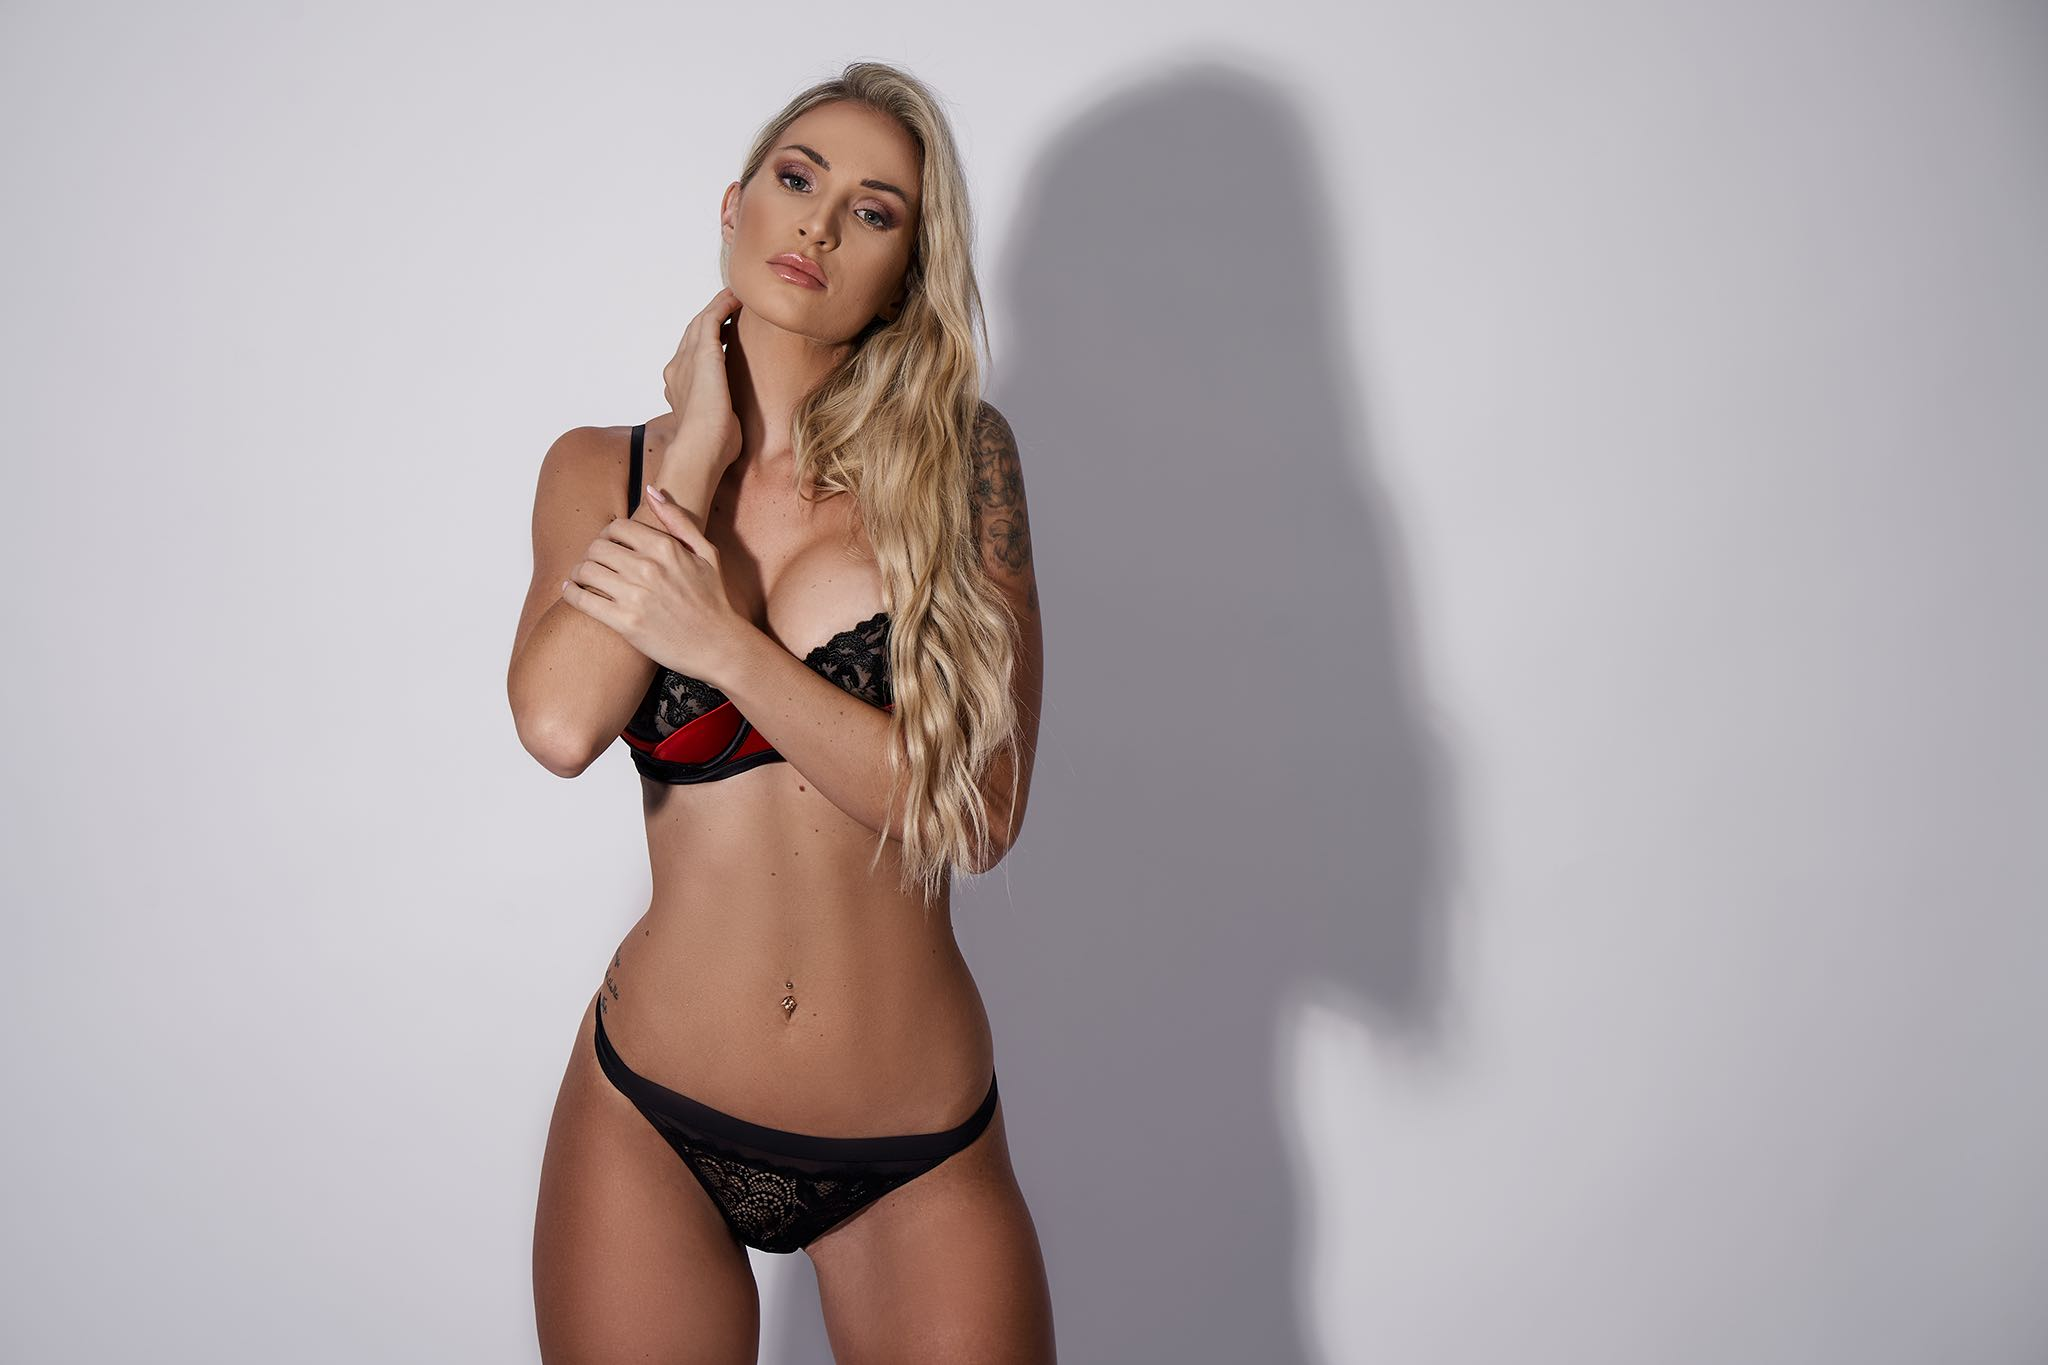 Meet Kayla Baker as our LW Babe of the Week